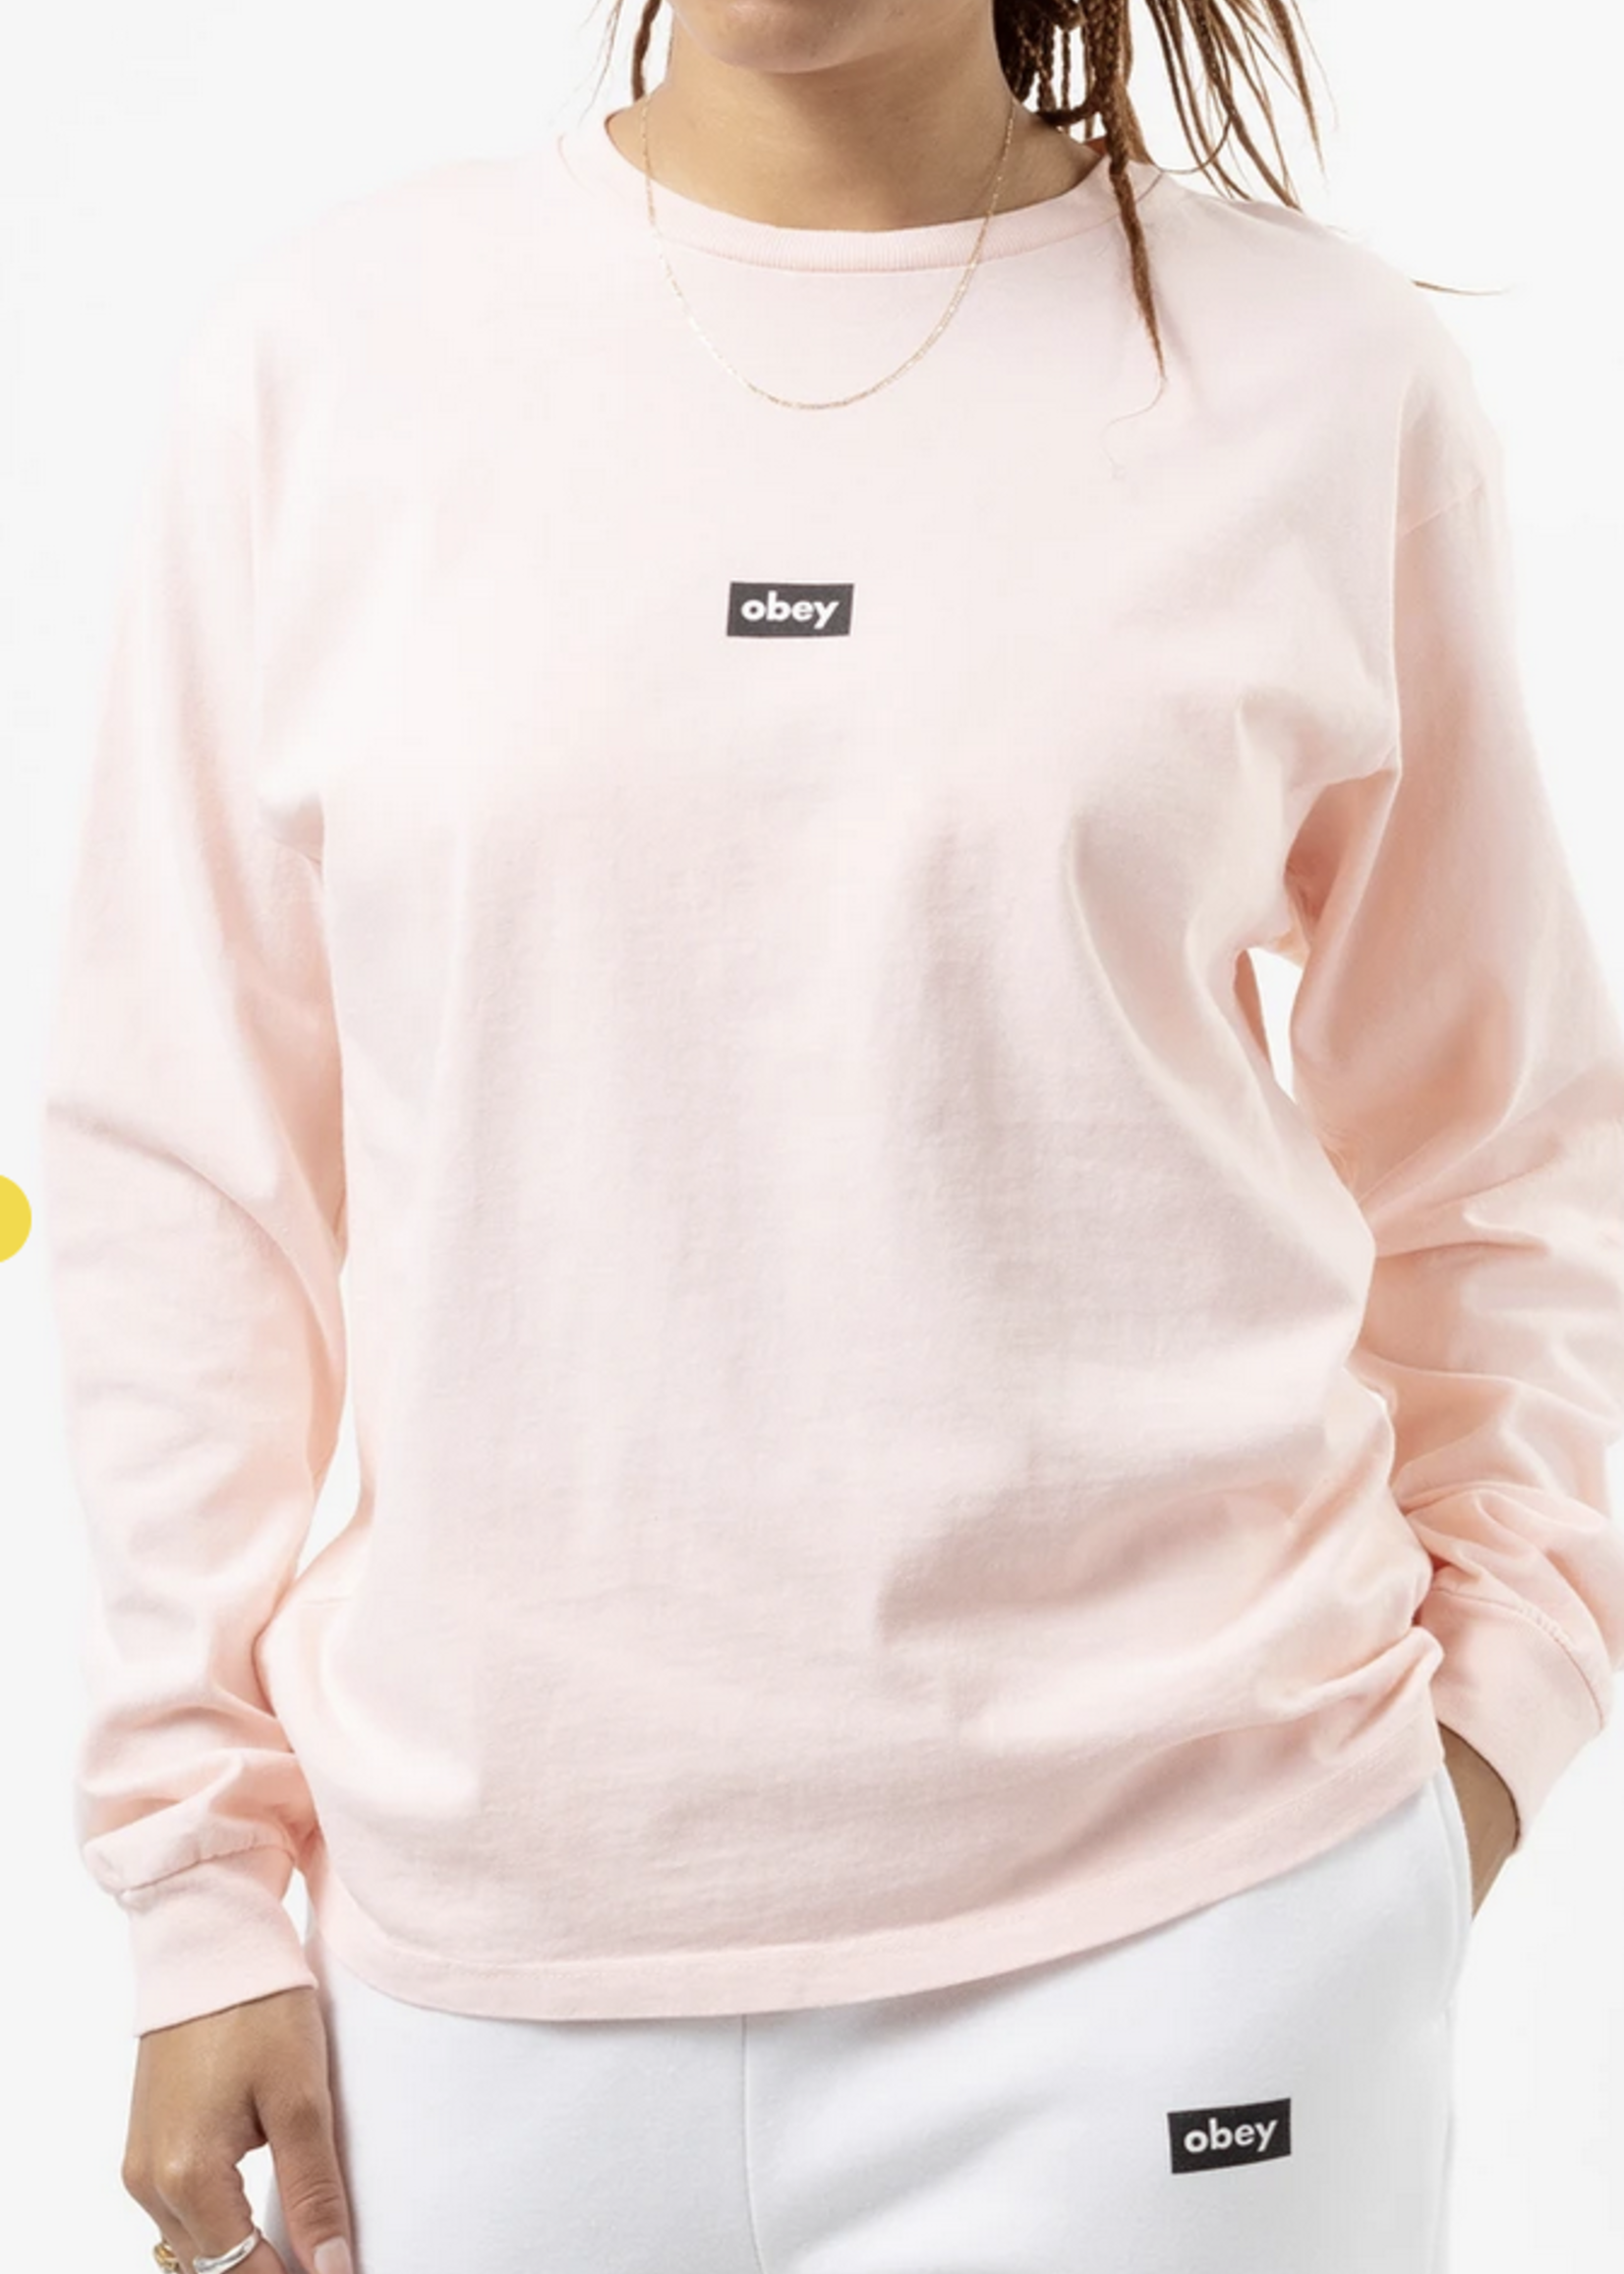 obey obey tag long sleeve top